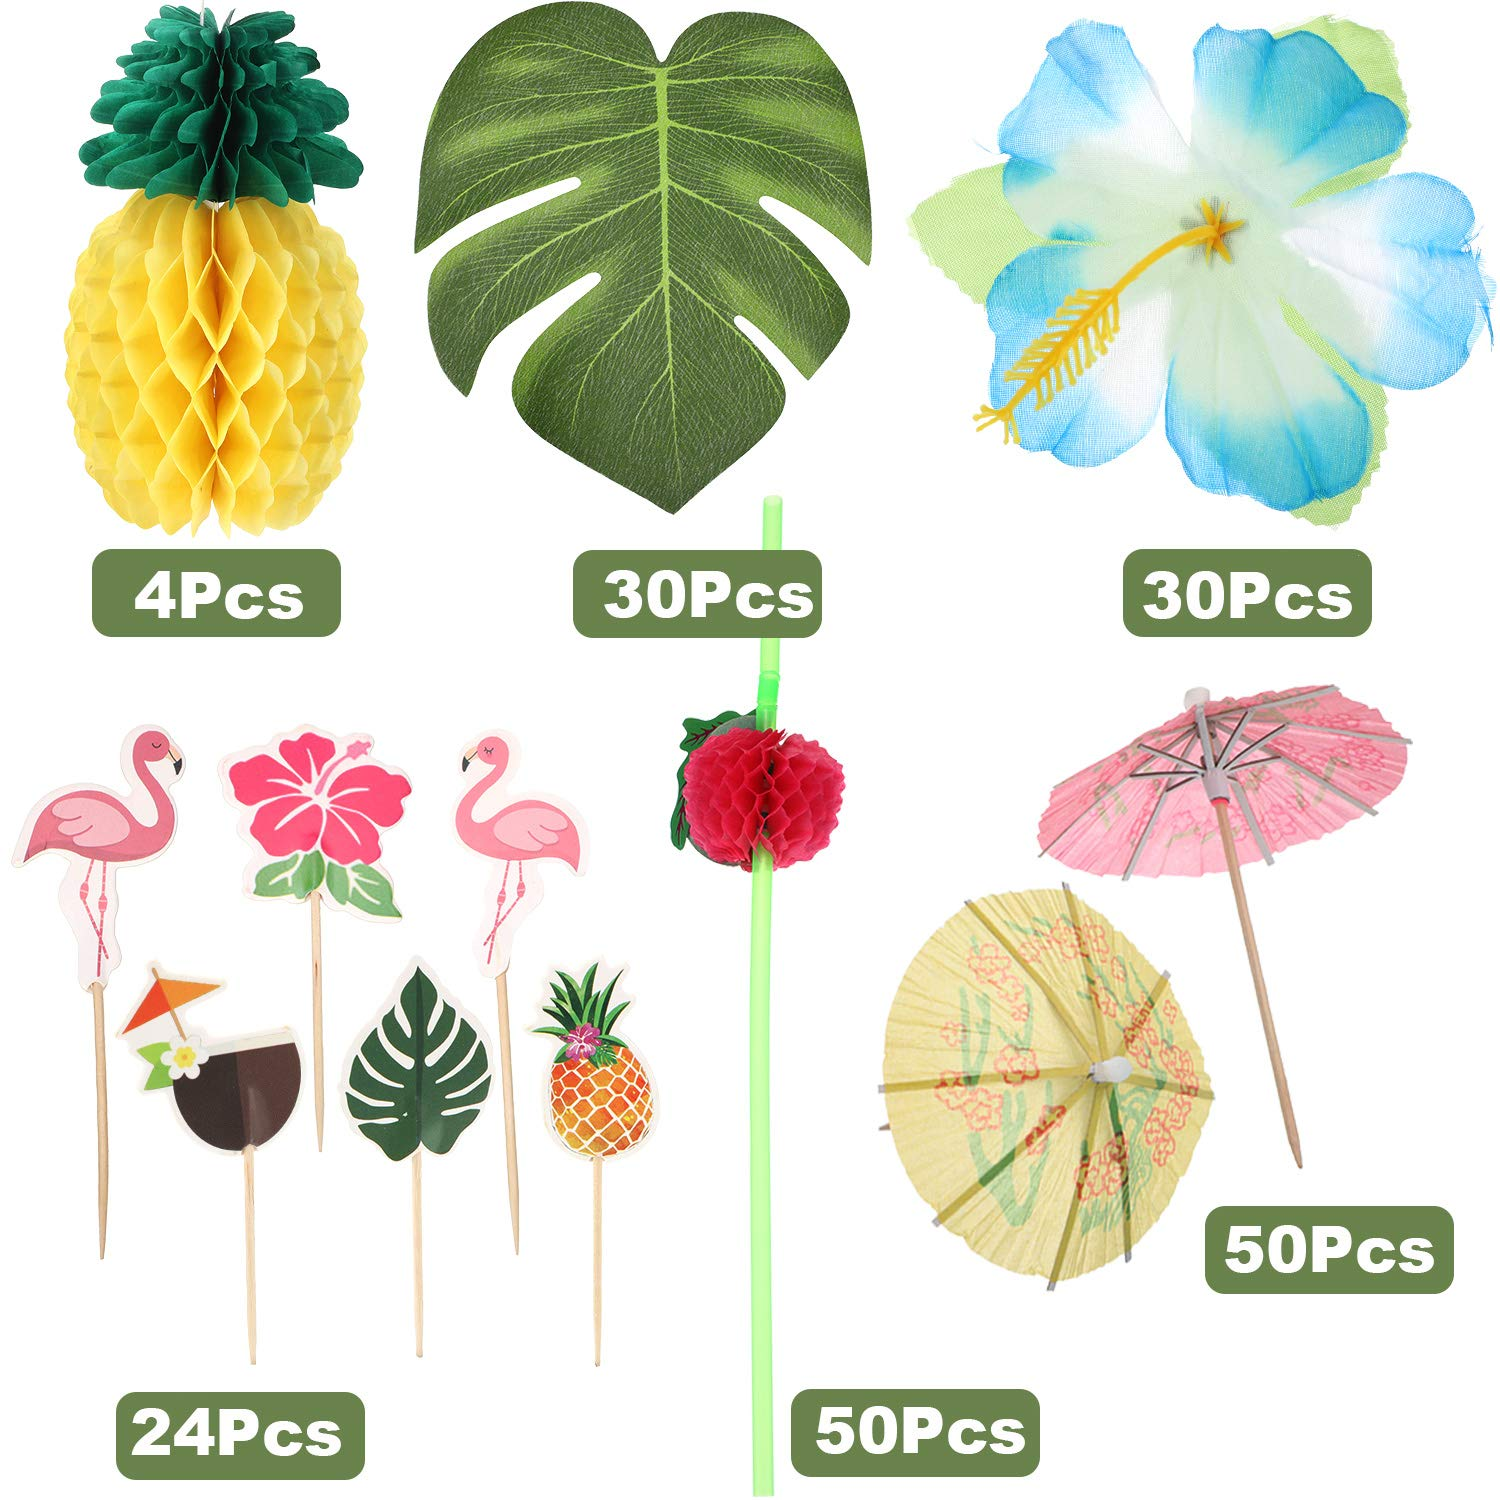 188 Pieces Hawaiian Luau Party Decorations,Include 30 Pieces Tropical Palm Leaves, 30 Pieces Hibiscus Flowers, 4 Pieces Paper Pineapples, 24 Pieces Cupcake Toppers, 50 Pieces 3D Fruit Straws, 50 Pieces Paper Umbrella by Zonon (Image #6)